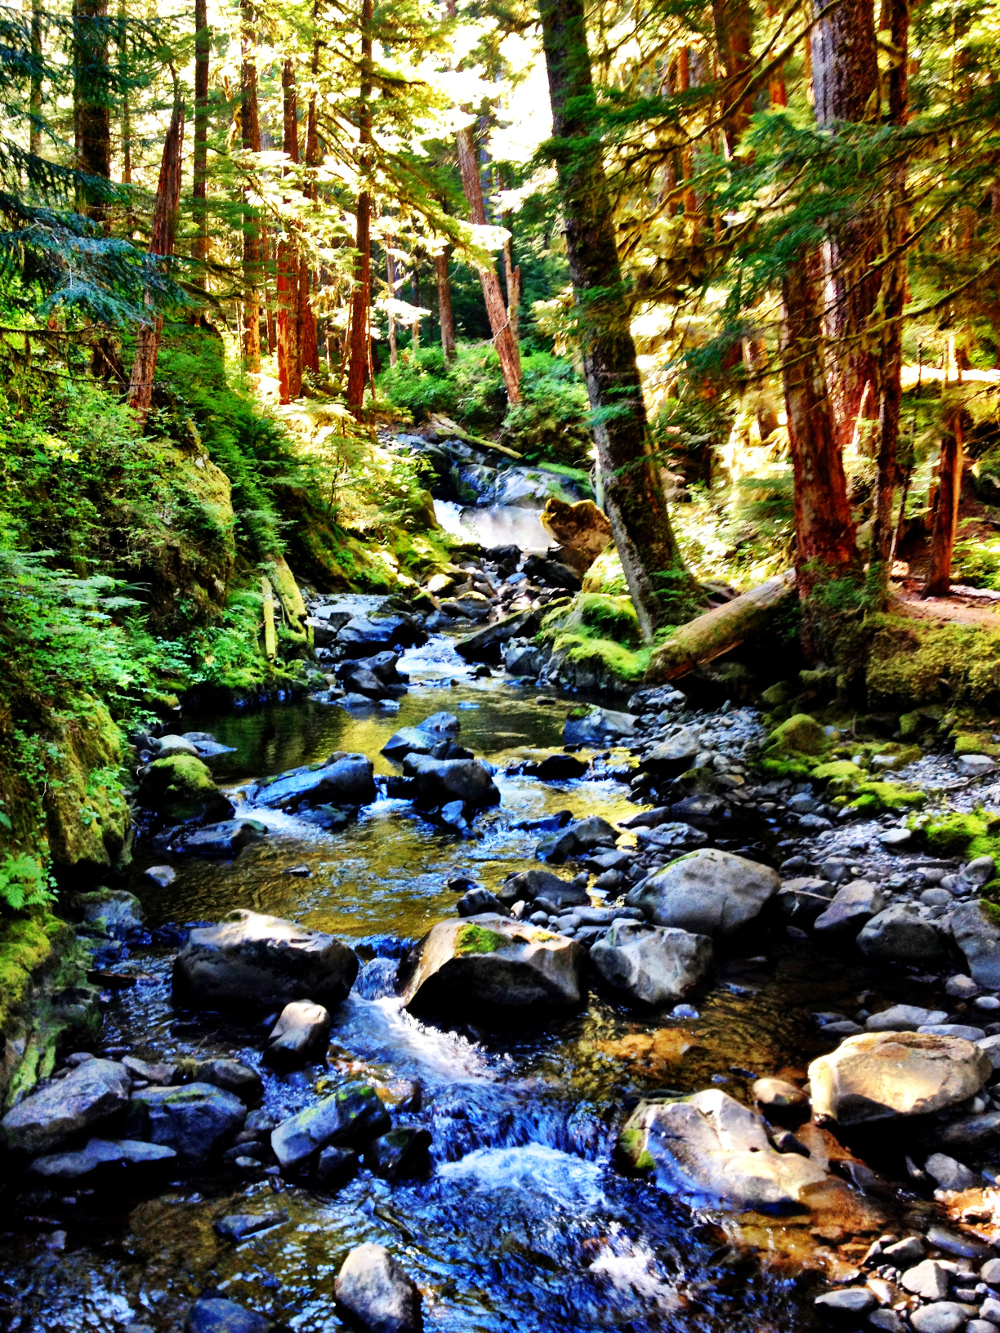 Scenery on Lovers Lane trail near Sol Duc Hot Springs in Olympic National Park Double-Barrelled Travel